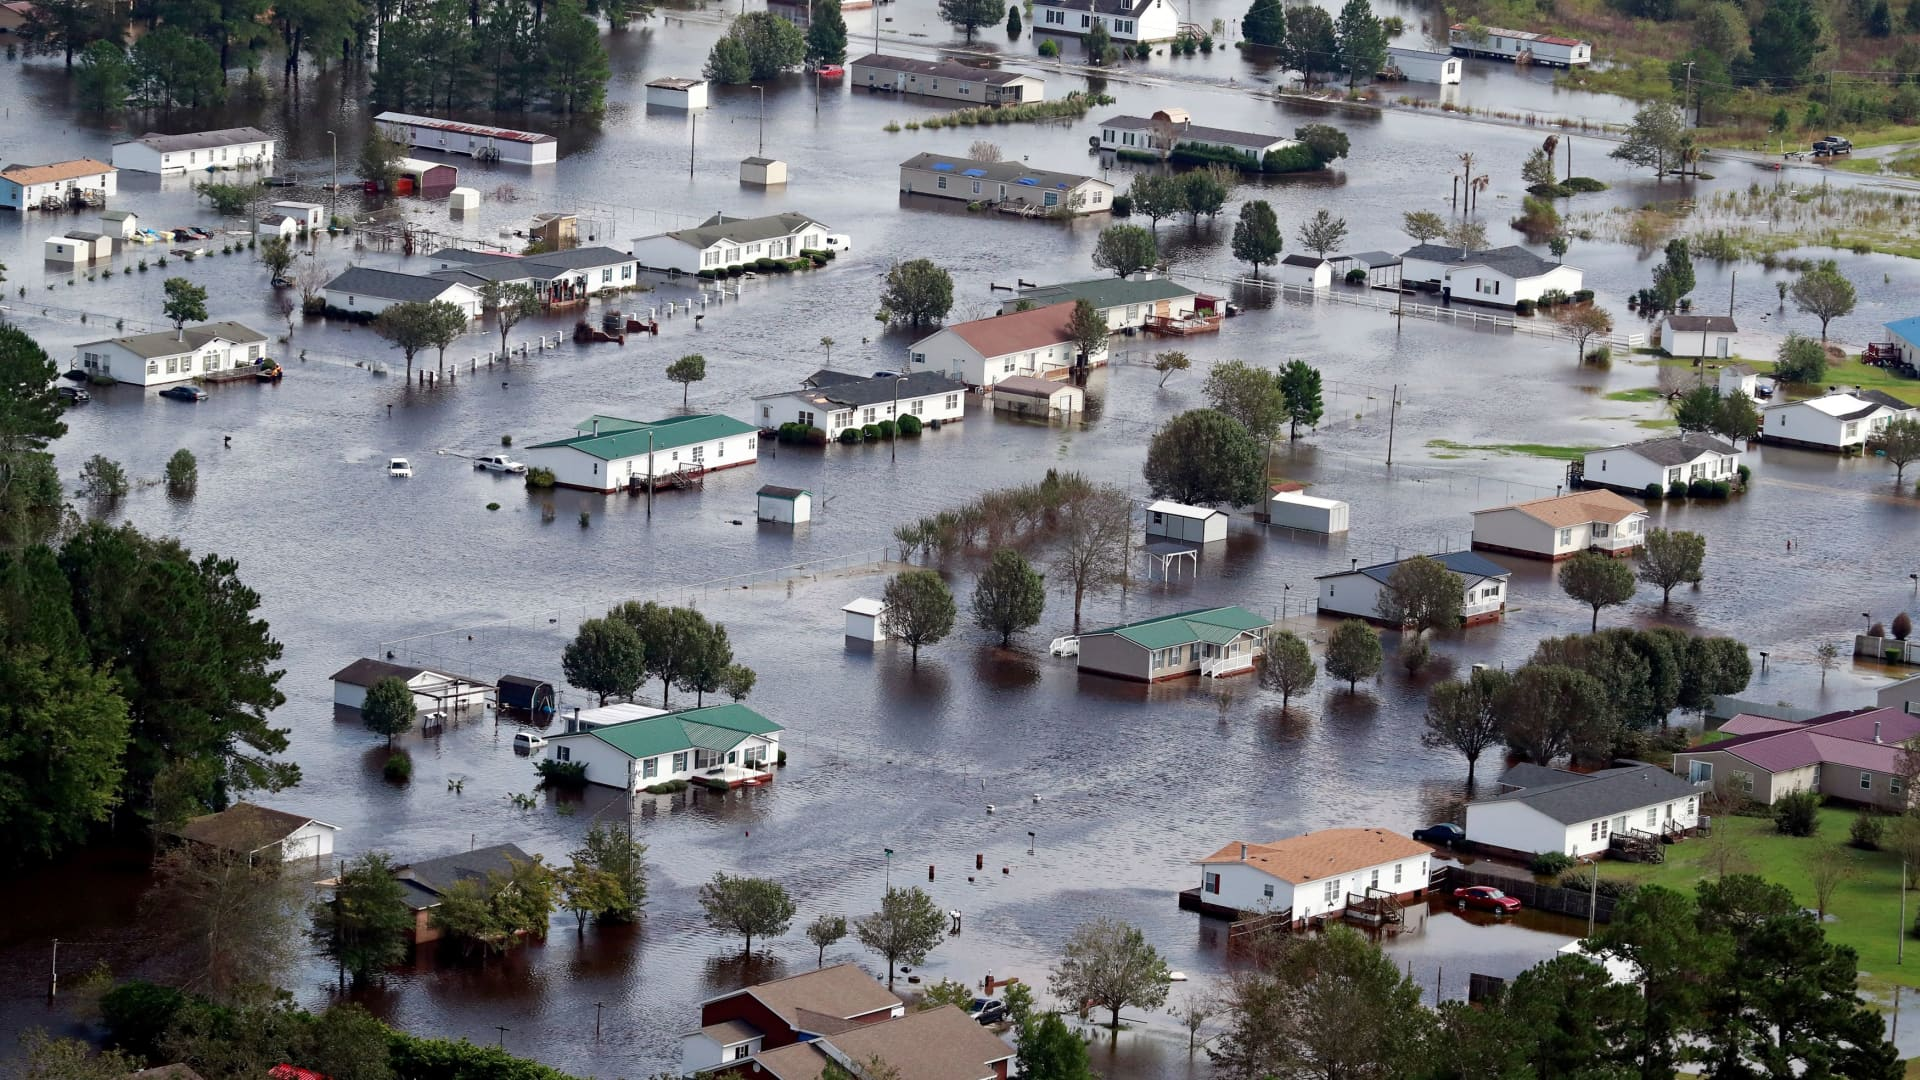 Houses sit in floodwater caused by Hurricane Florence, in this aerial picture, on the outskirts of Lumberton, North Carolina, September 17, 2018.